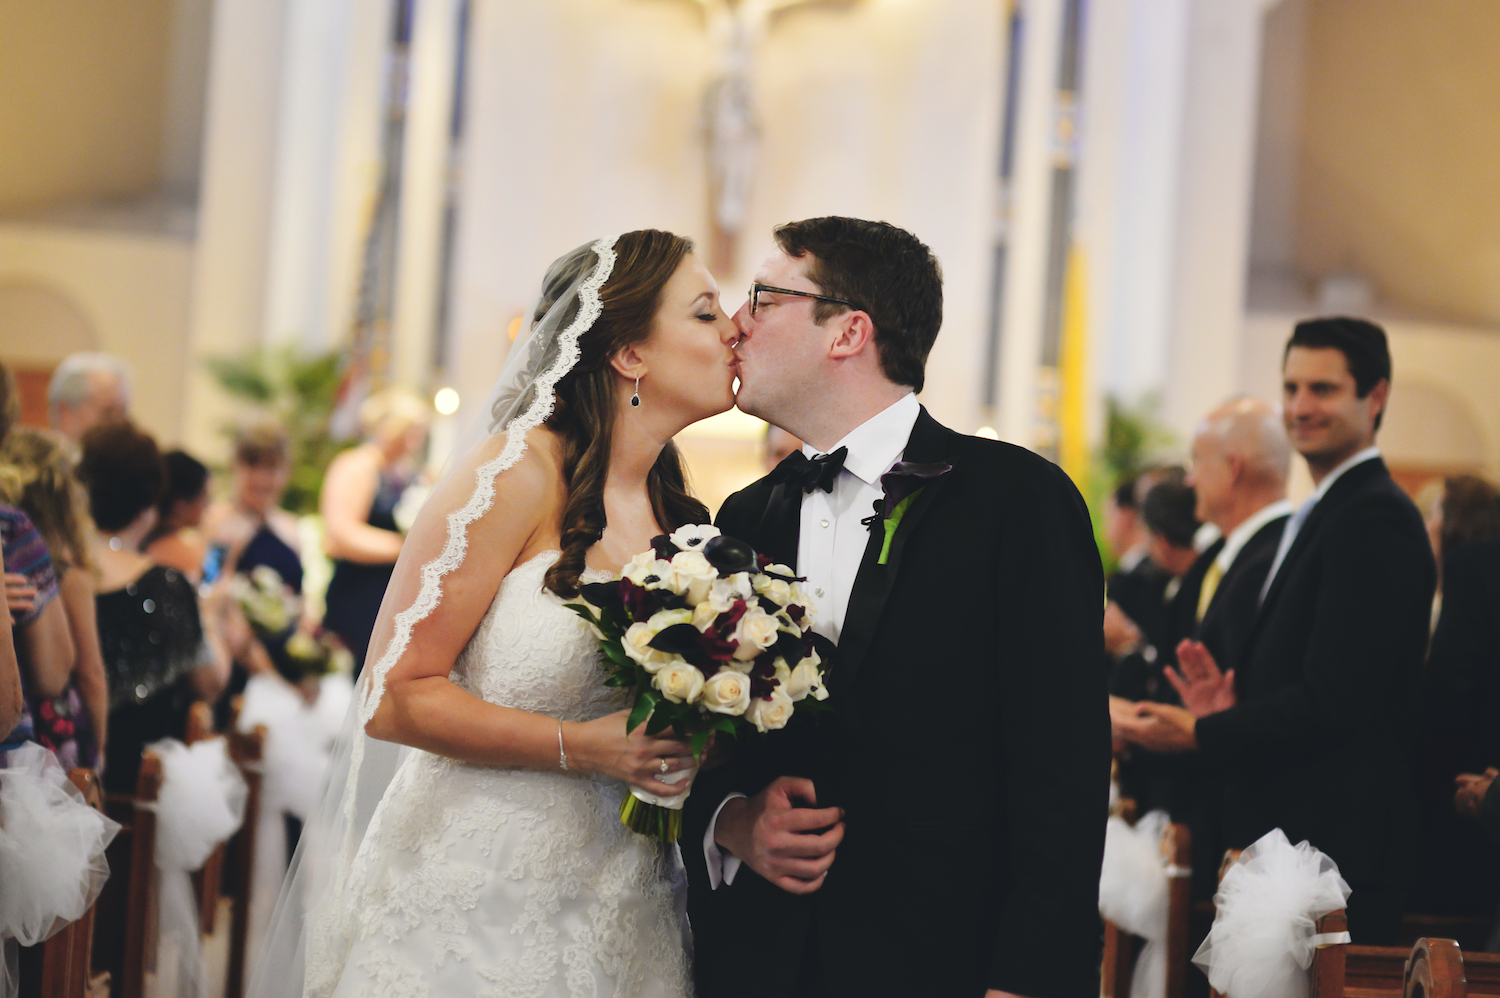 alison&brian-kissing-in-aisle-church-ceremony-wedding-photos-nyc